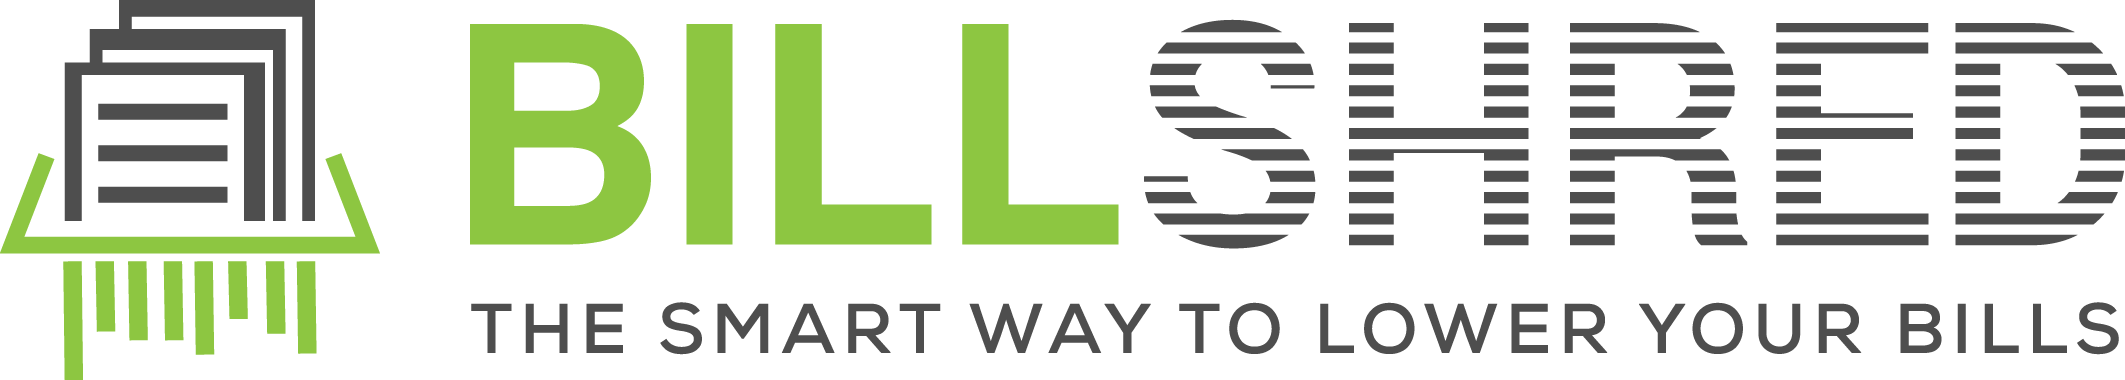 """Design a clean logo for Billshred - """"The smart way to lower your bills"""""""